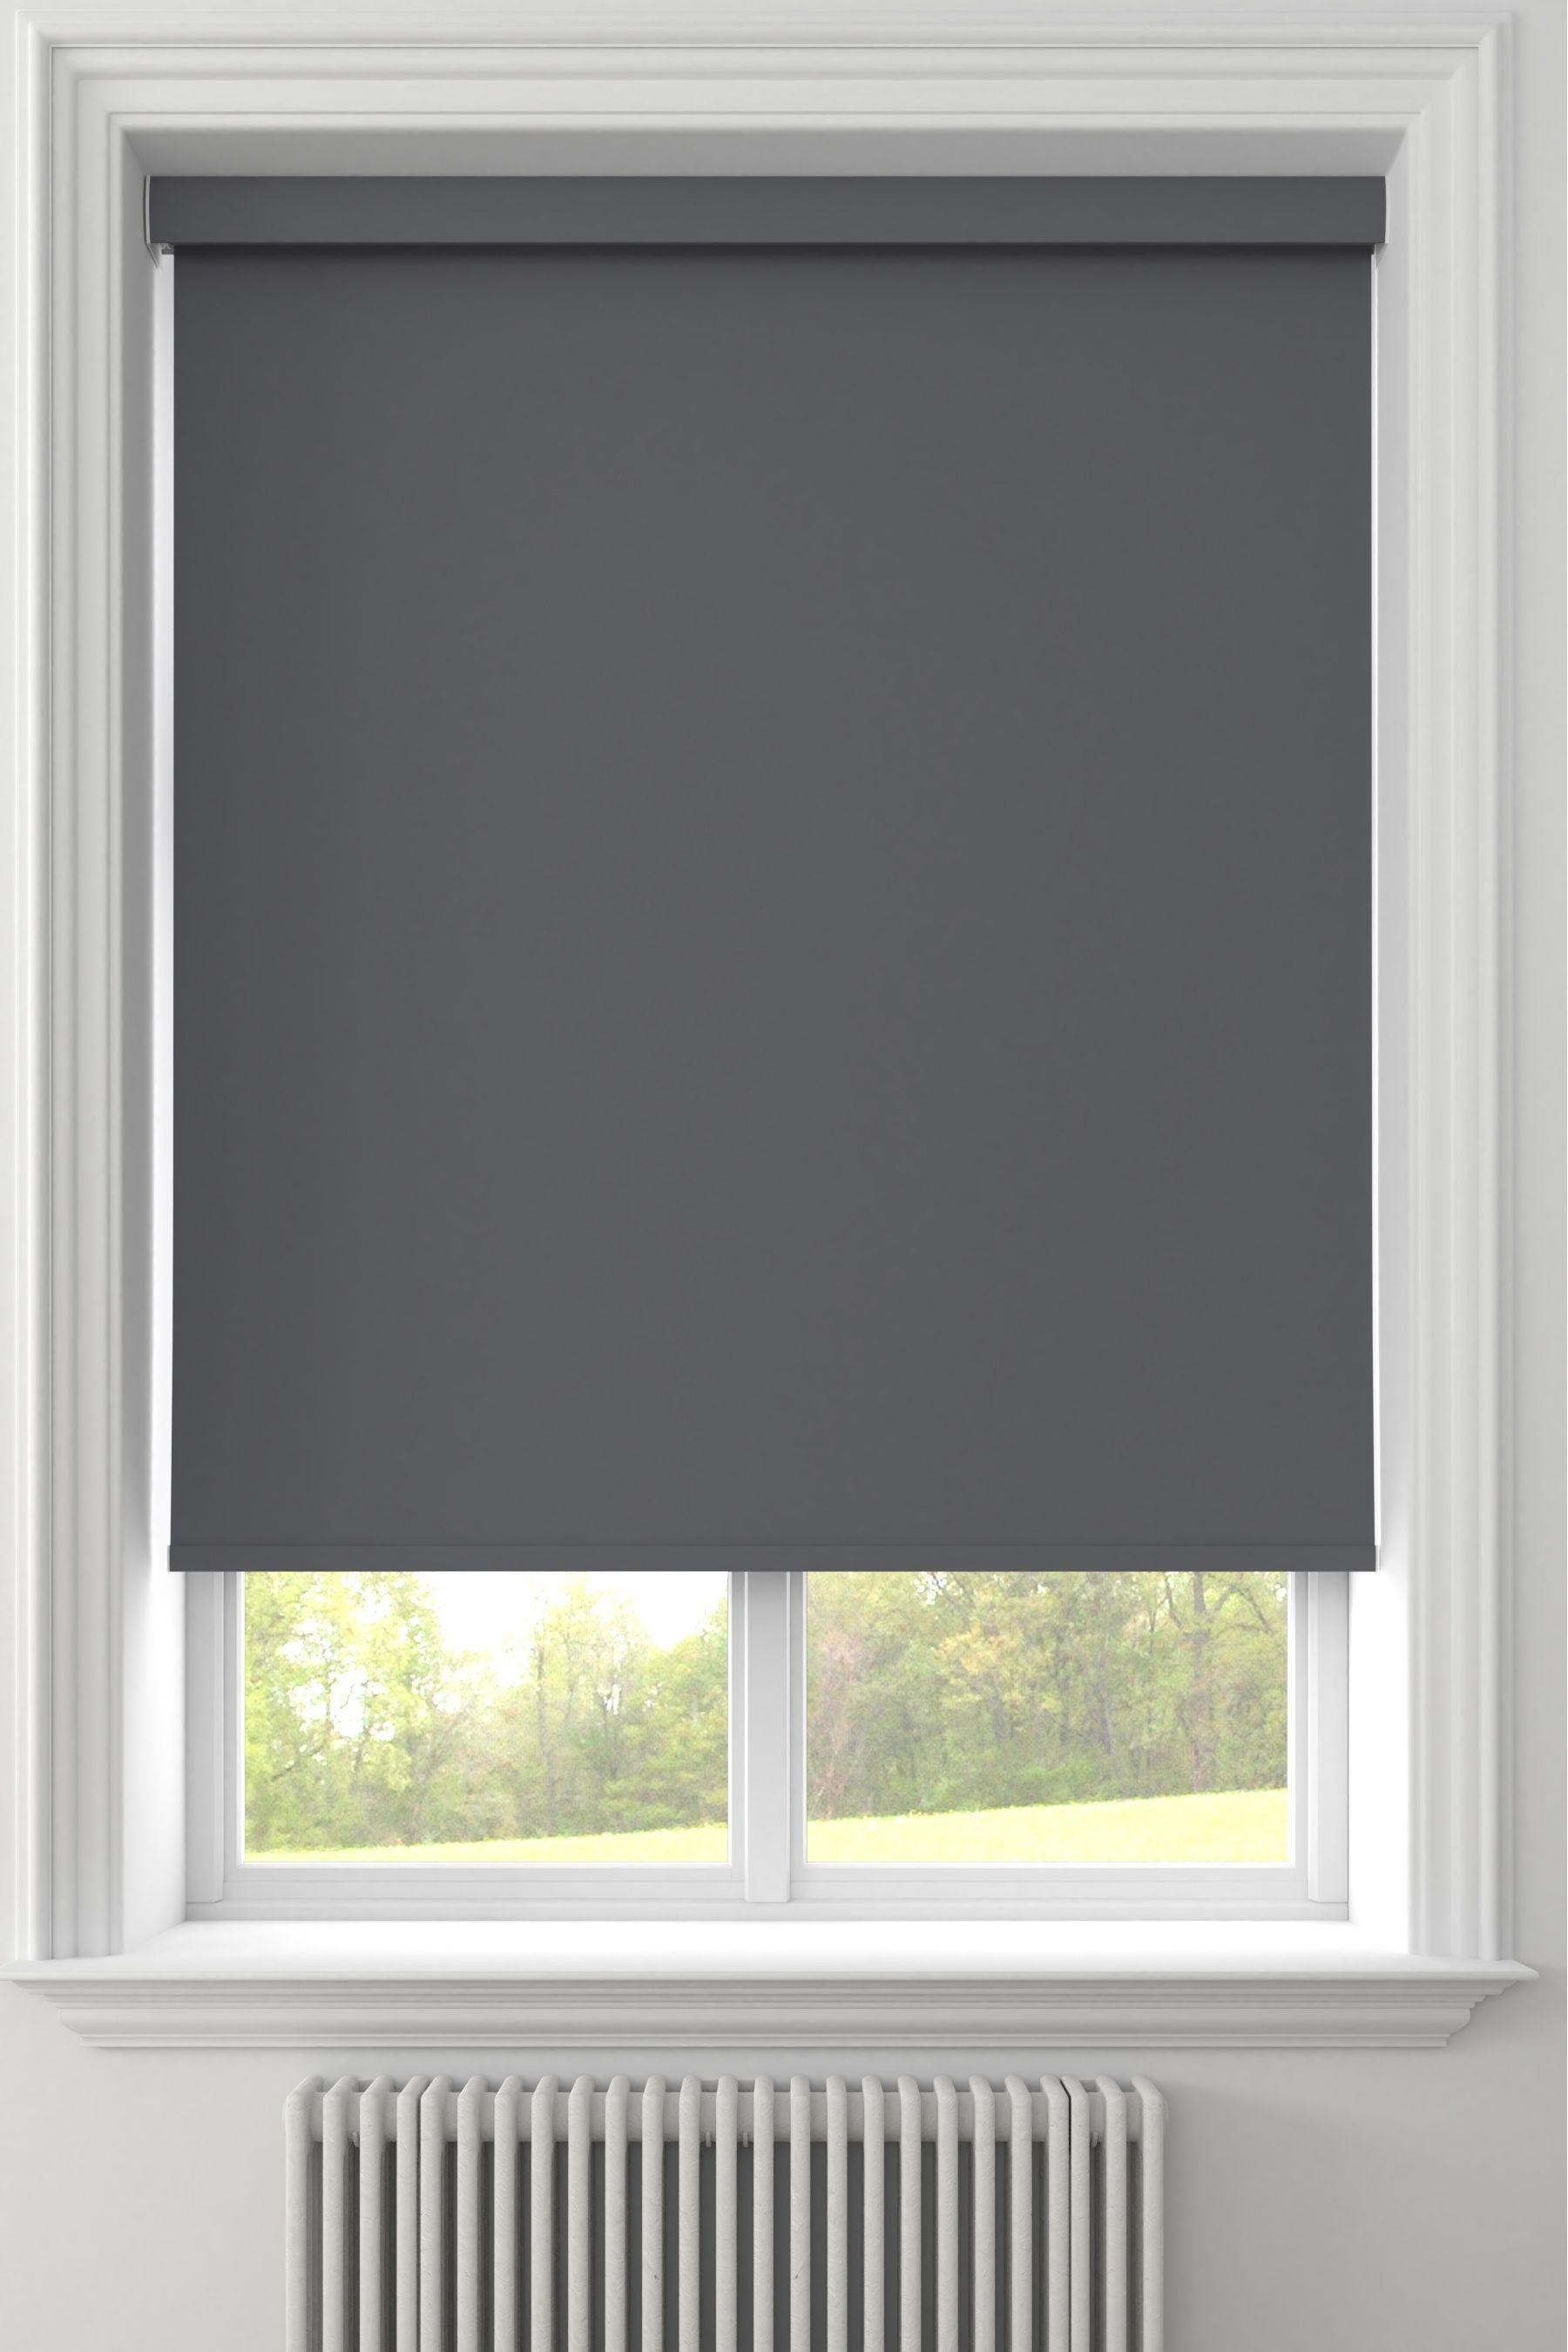 Buy Star Bo Clay Grey Made To Measure Blackout Roller Blind From The Next Uk Online Shop In 2020 Waterproof Roller Blinds Roller Blinds Blackout Roller Blinds